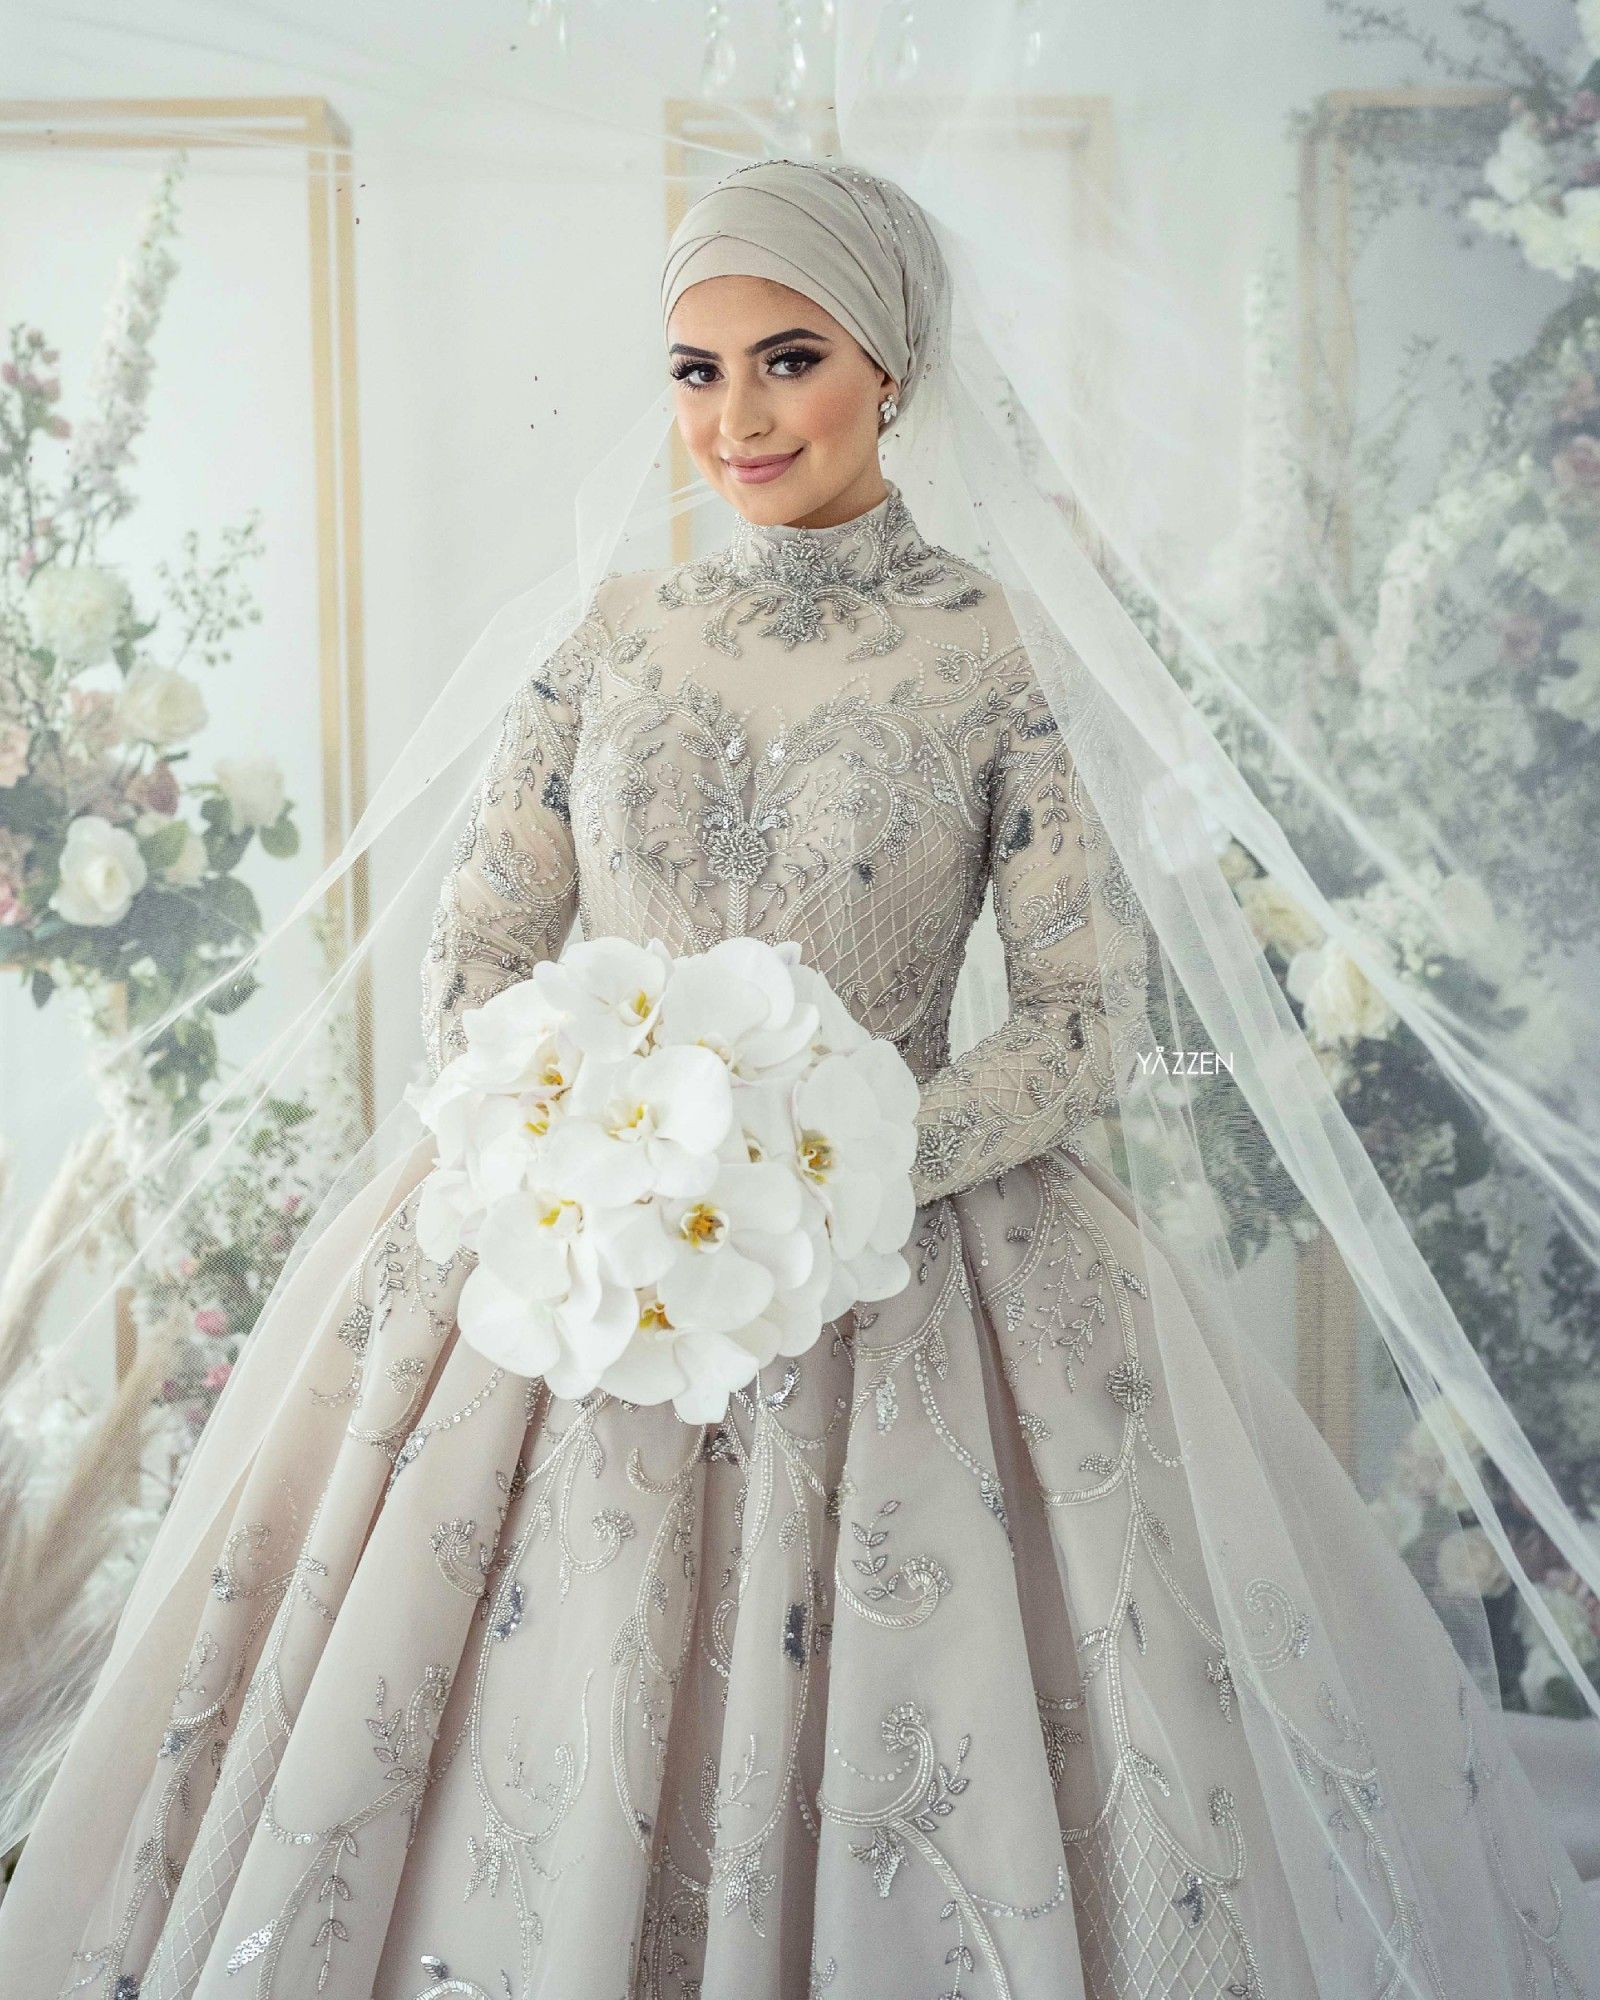 Steven Khalil Wedding Dress  Muslim wedding dress hijab bride